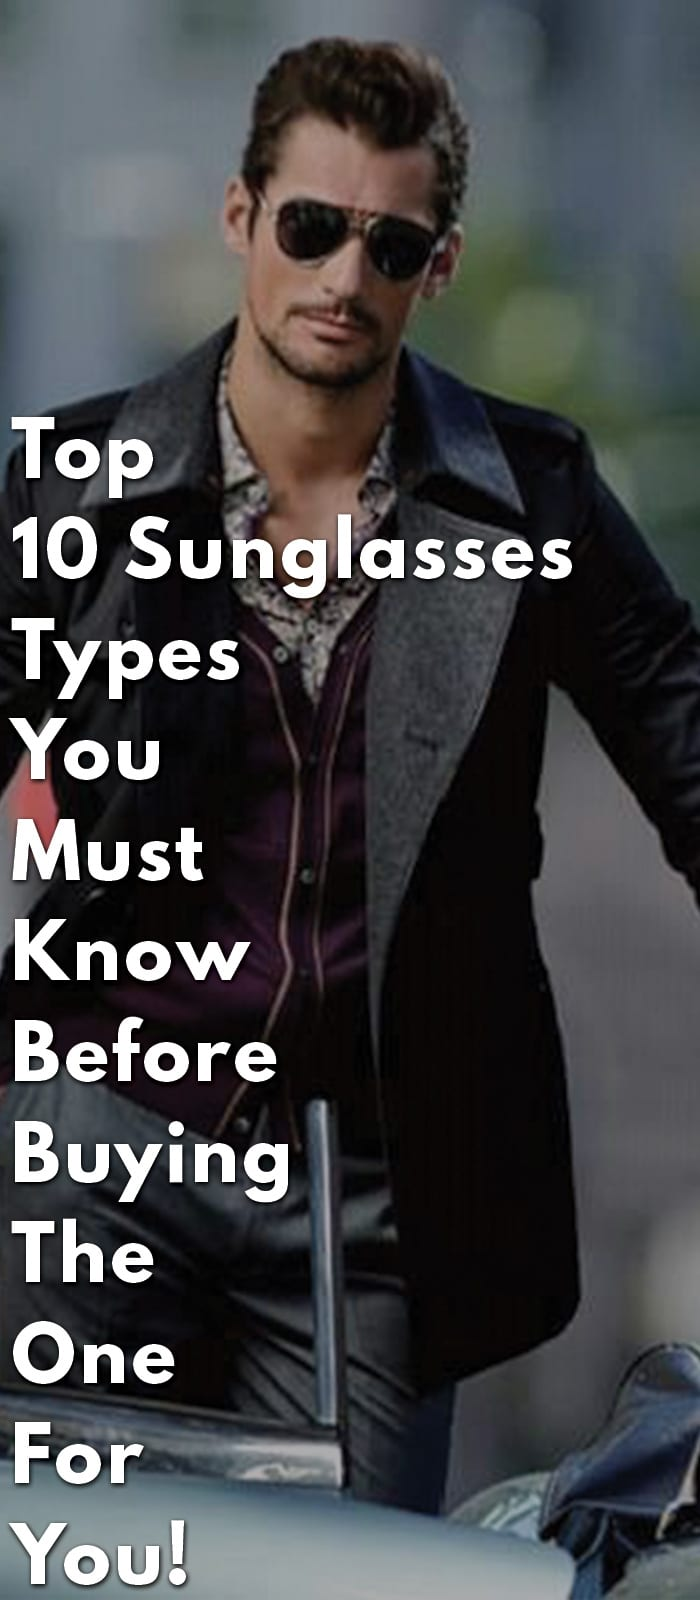 Top-10-Sunglasses-Types-You-Must-Know-Before-Buying-The-One-For-You!